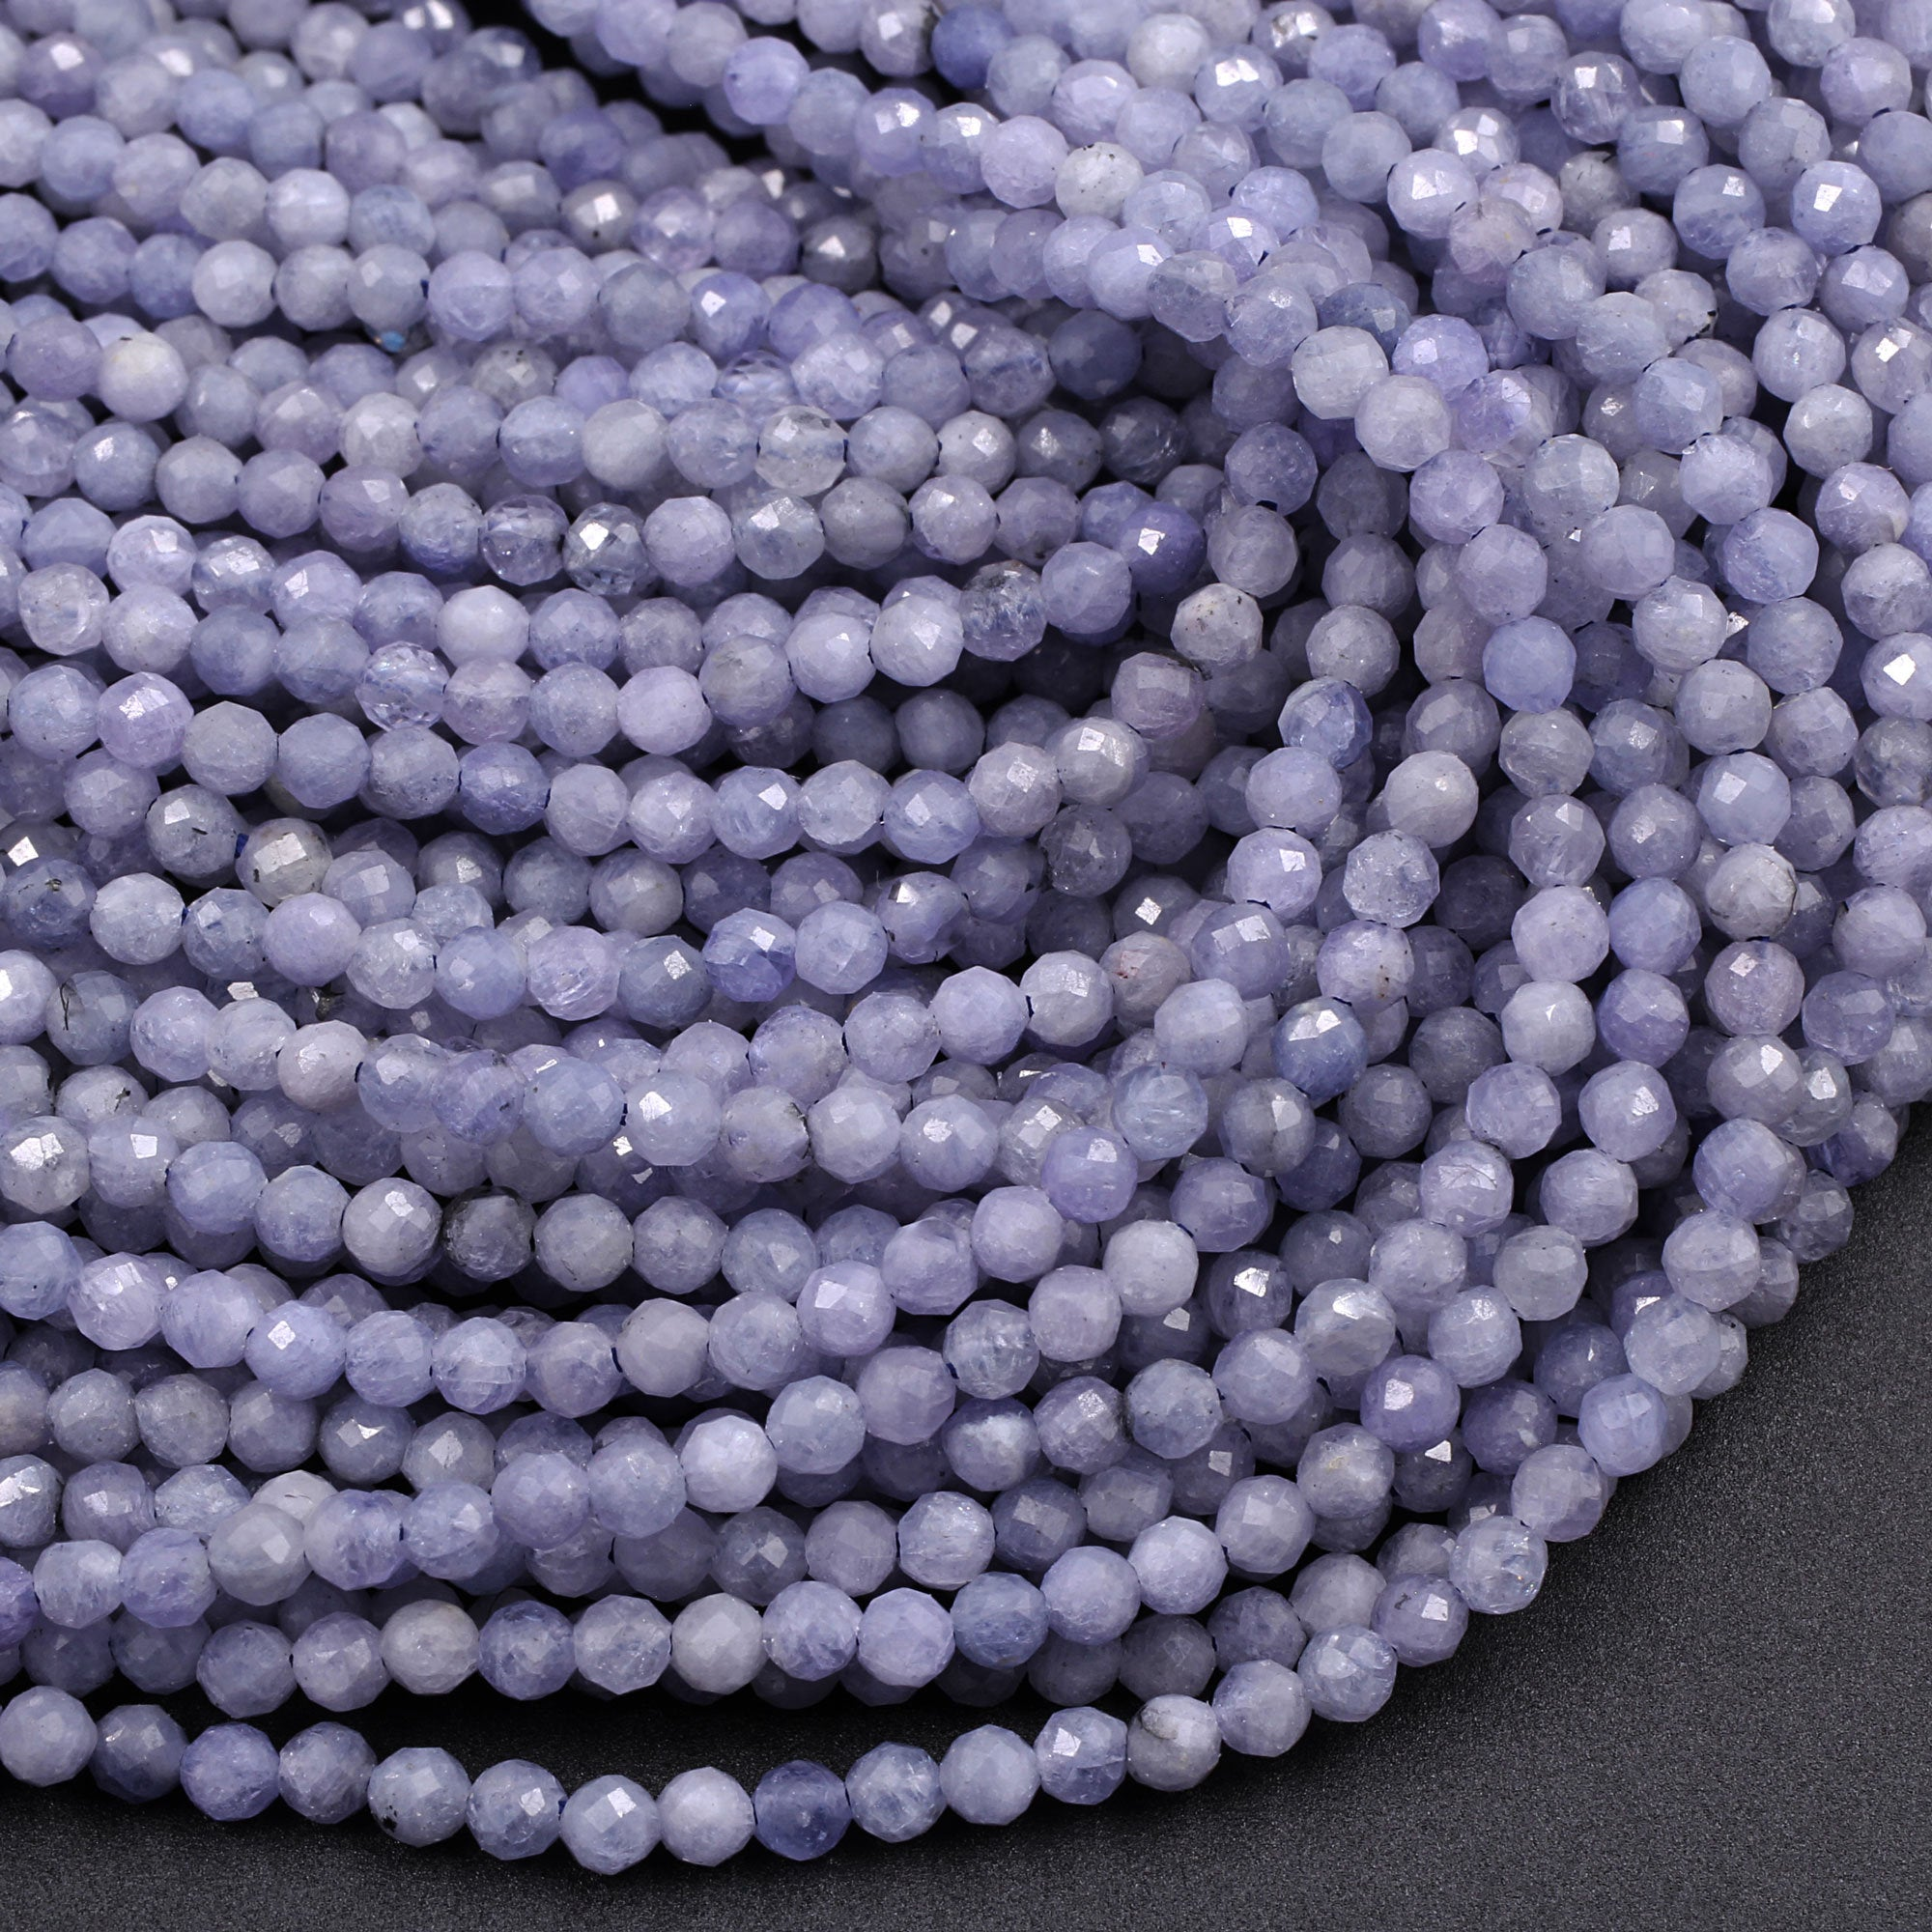 Details about  /16 Inch Long Micro Faceted Rondelle Natural Tanzanite Beads Size 3-3.5 MM